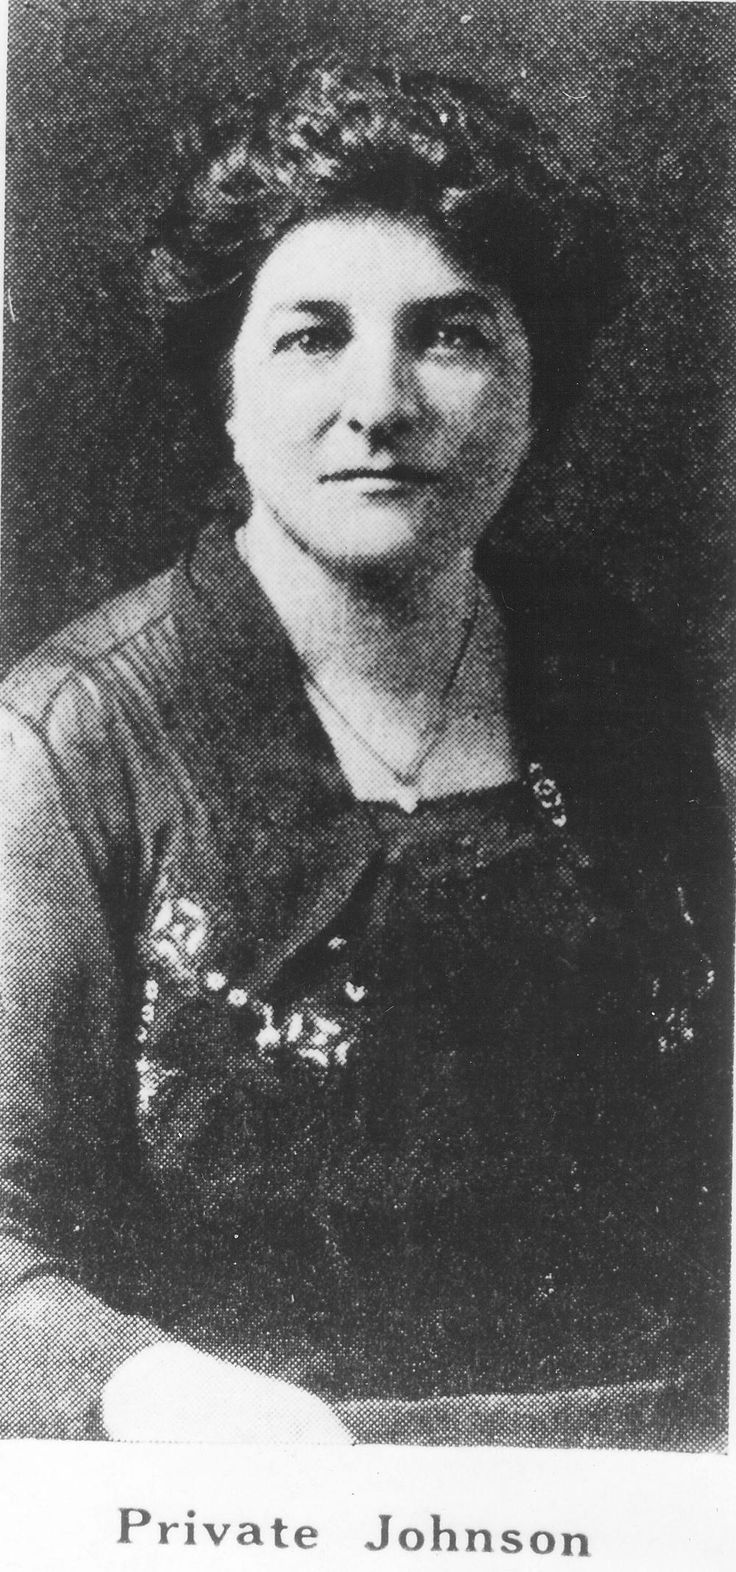 Pvt. Opha May Johnson, 40, first enlisted female Marine sometime after joining the Marine Corps. Johnson enlisted into the reserve in August 1918. (Courtesy of the Marine Corps History Division, Historical Reference Branch)  Read more: http://www.dvidshub.net/image/993597/female-marines-celebrate-95-years-corps#.Ugki3VO9x4w#ixzz2bmMnCiq6